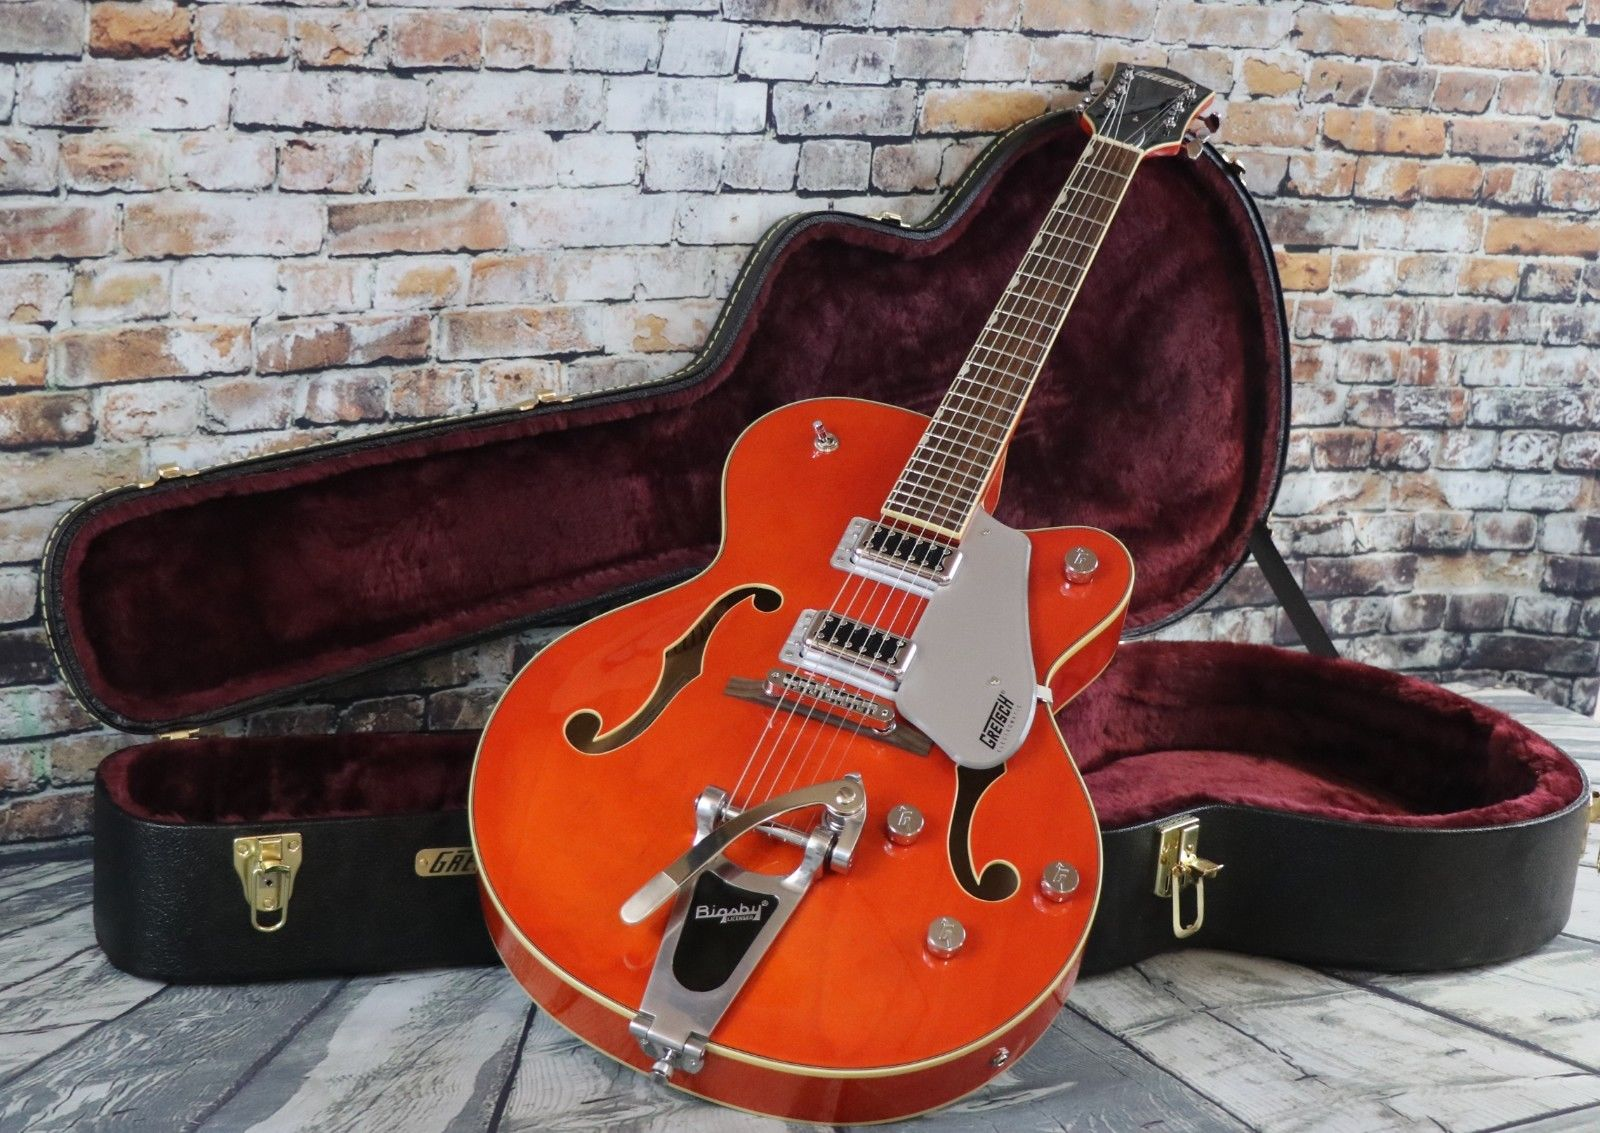 Gretsch G5420T Electromatic Hollowbody Electric Guitar w Gretsch TKL Case image